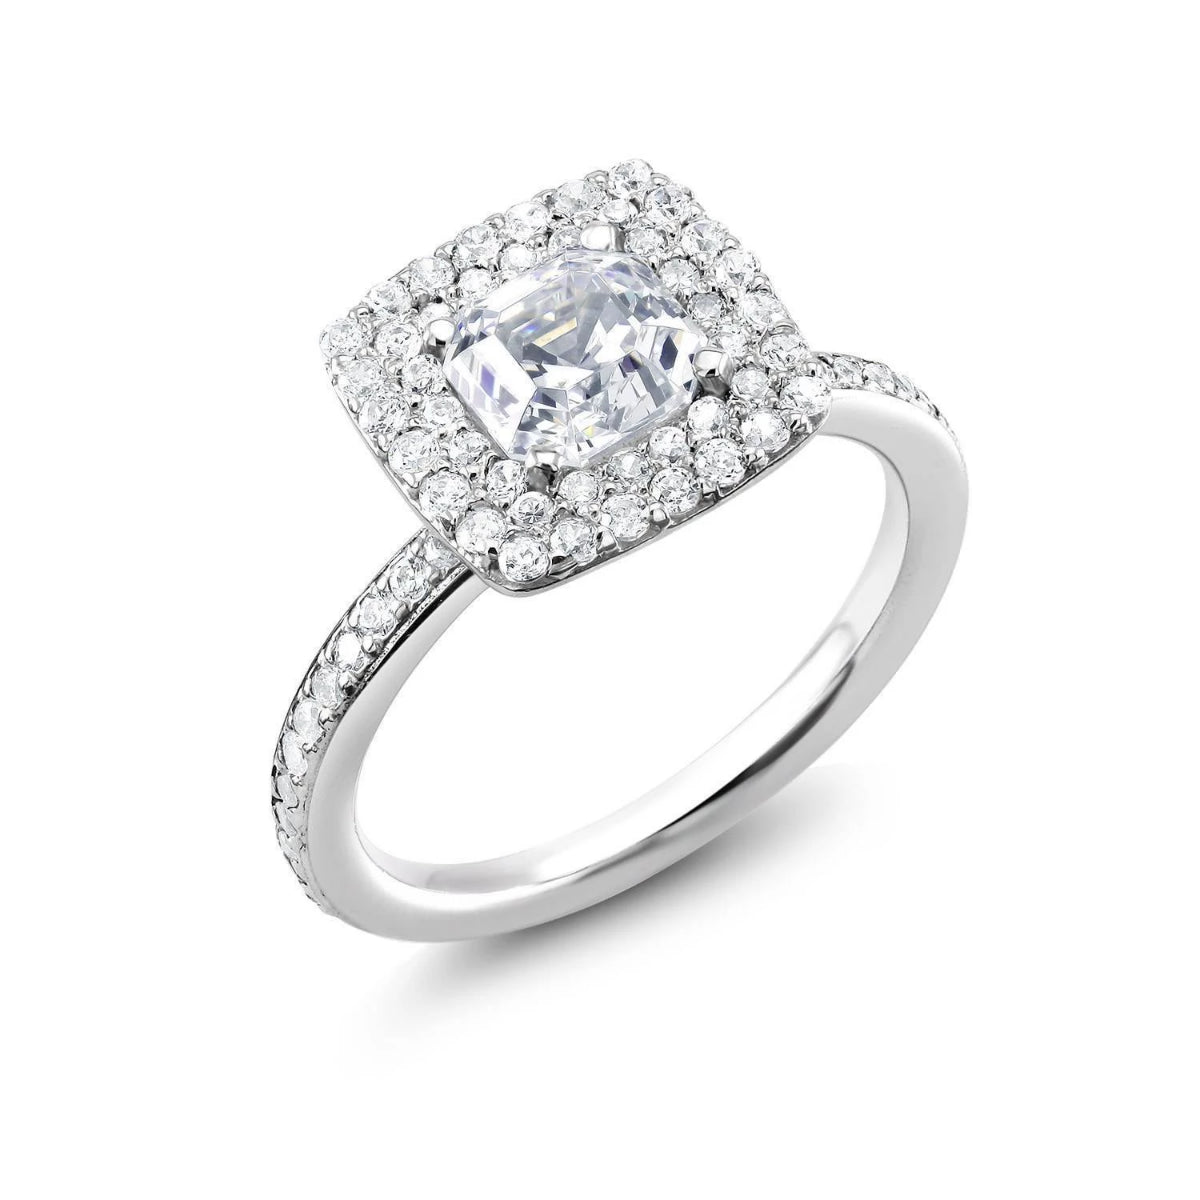 french product ring rings soleste halo shown engagement cut pav wedding diamond double carat with a round center